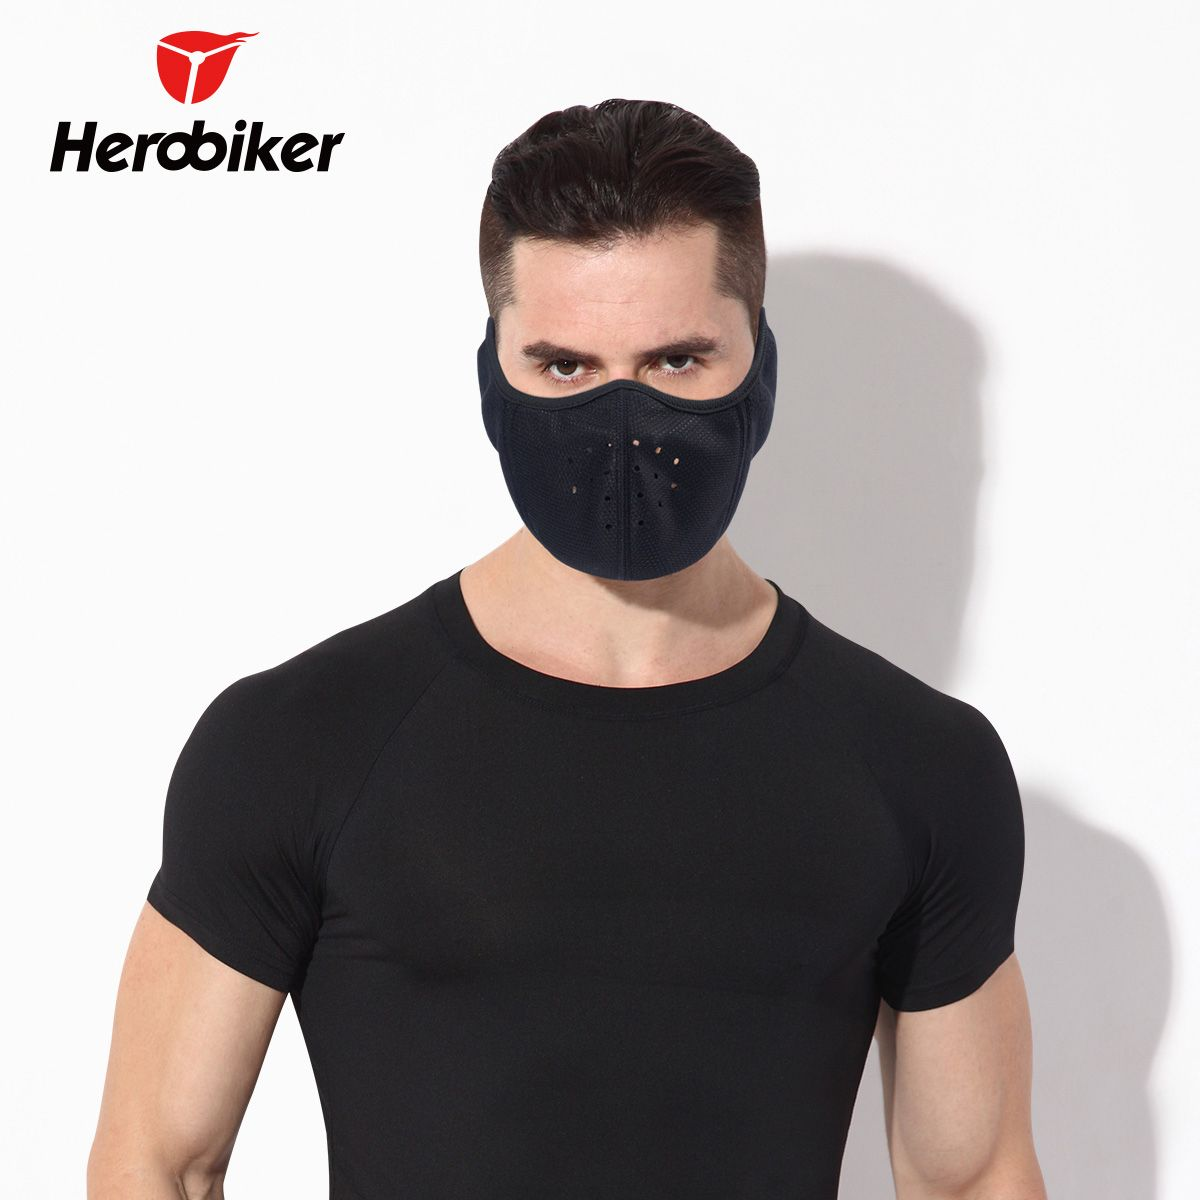 HEROBIKER Motorcycle Face Mask Keep Warm Motorcycle Ski Mask Winter Protect the Neck Half Face Mask Breathing Cold Mask